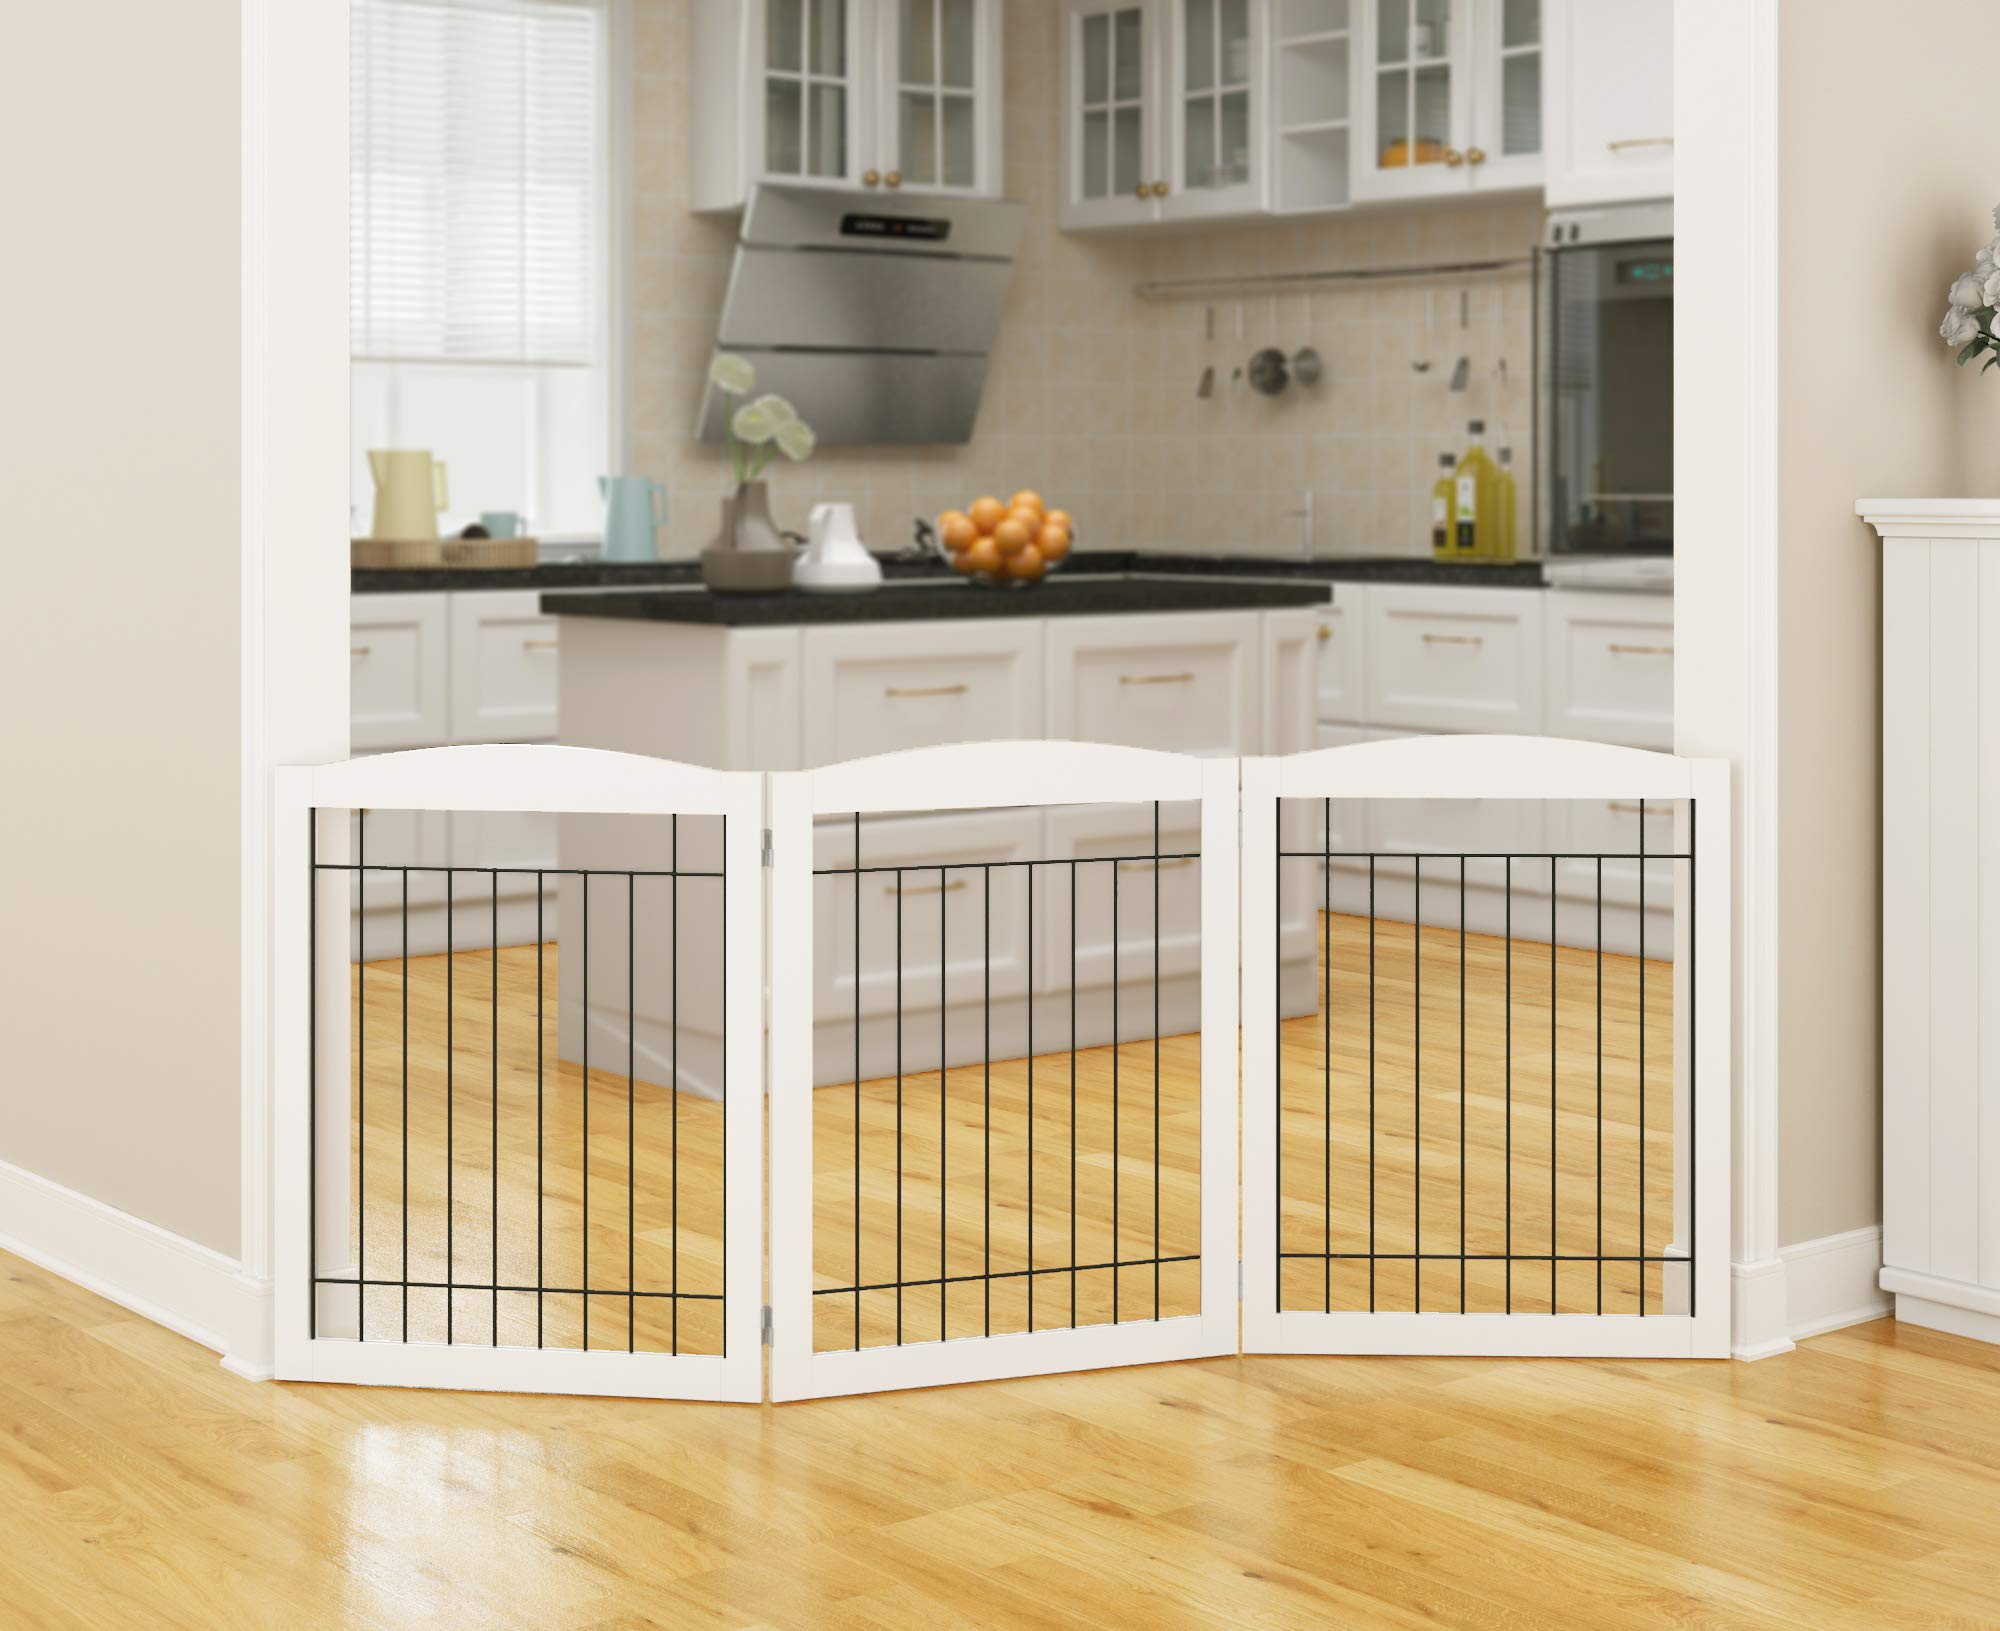 PAWLAND Wooden Freestanding Wire Pet Gate for Dogs, Step Over Fence, Dog Gate for The House, Doorway, Stairs, Extra Wide Tall Pet Safety Fence (White, 30'' Height 3 Panels)